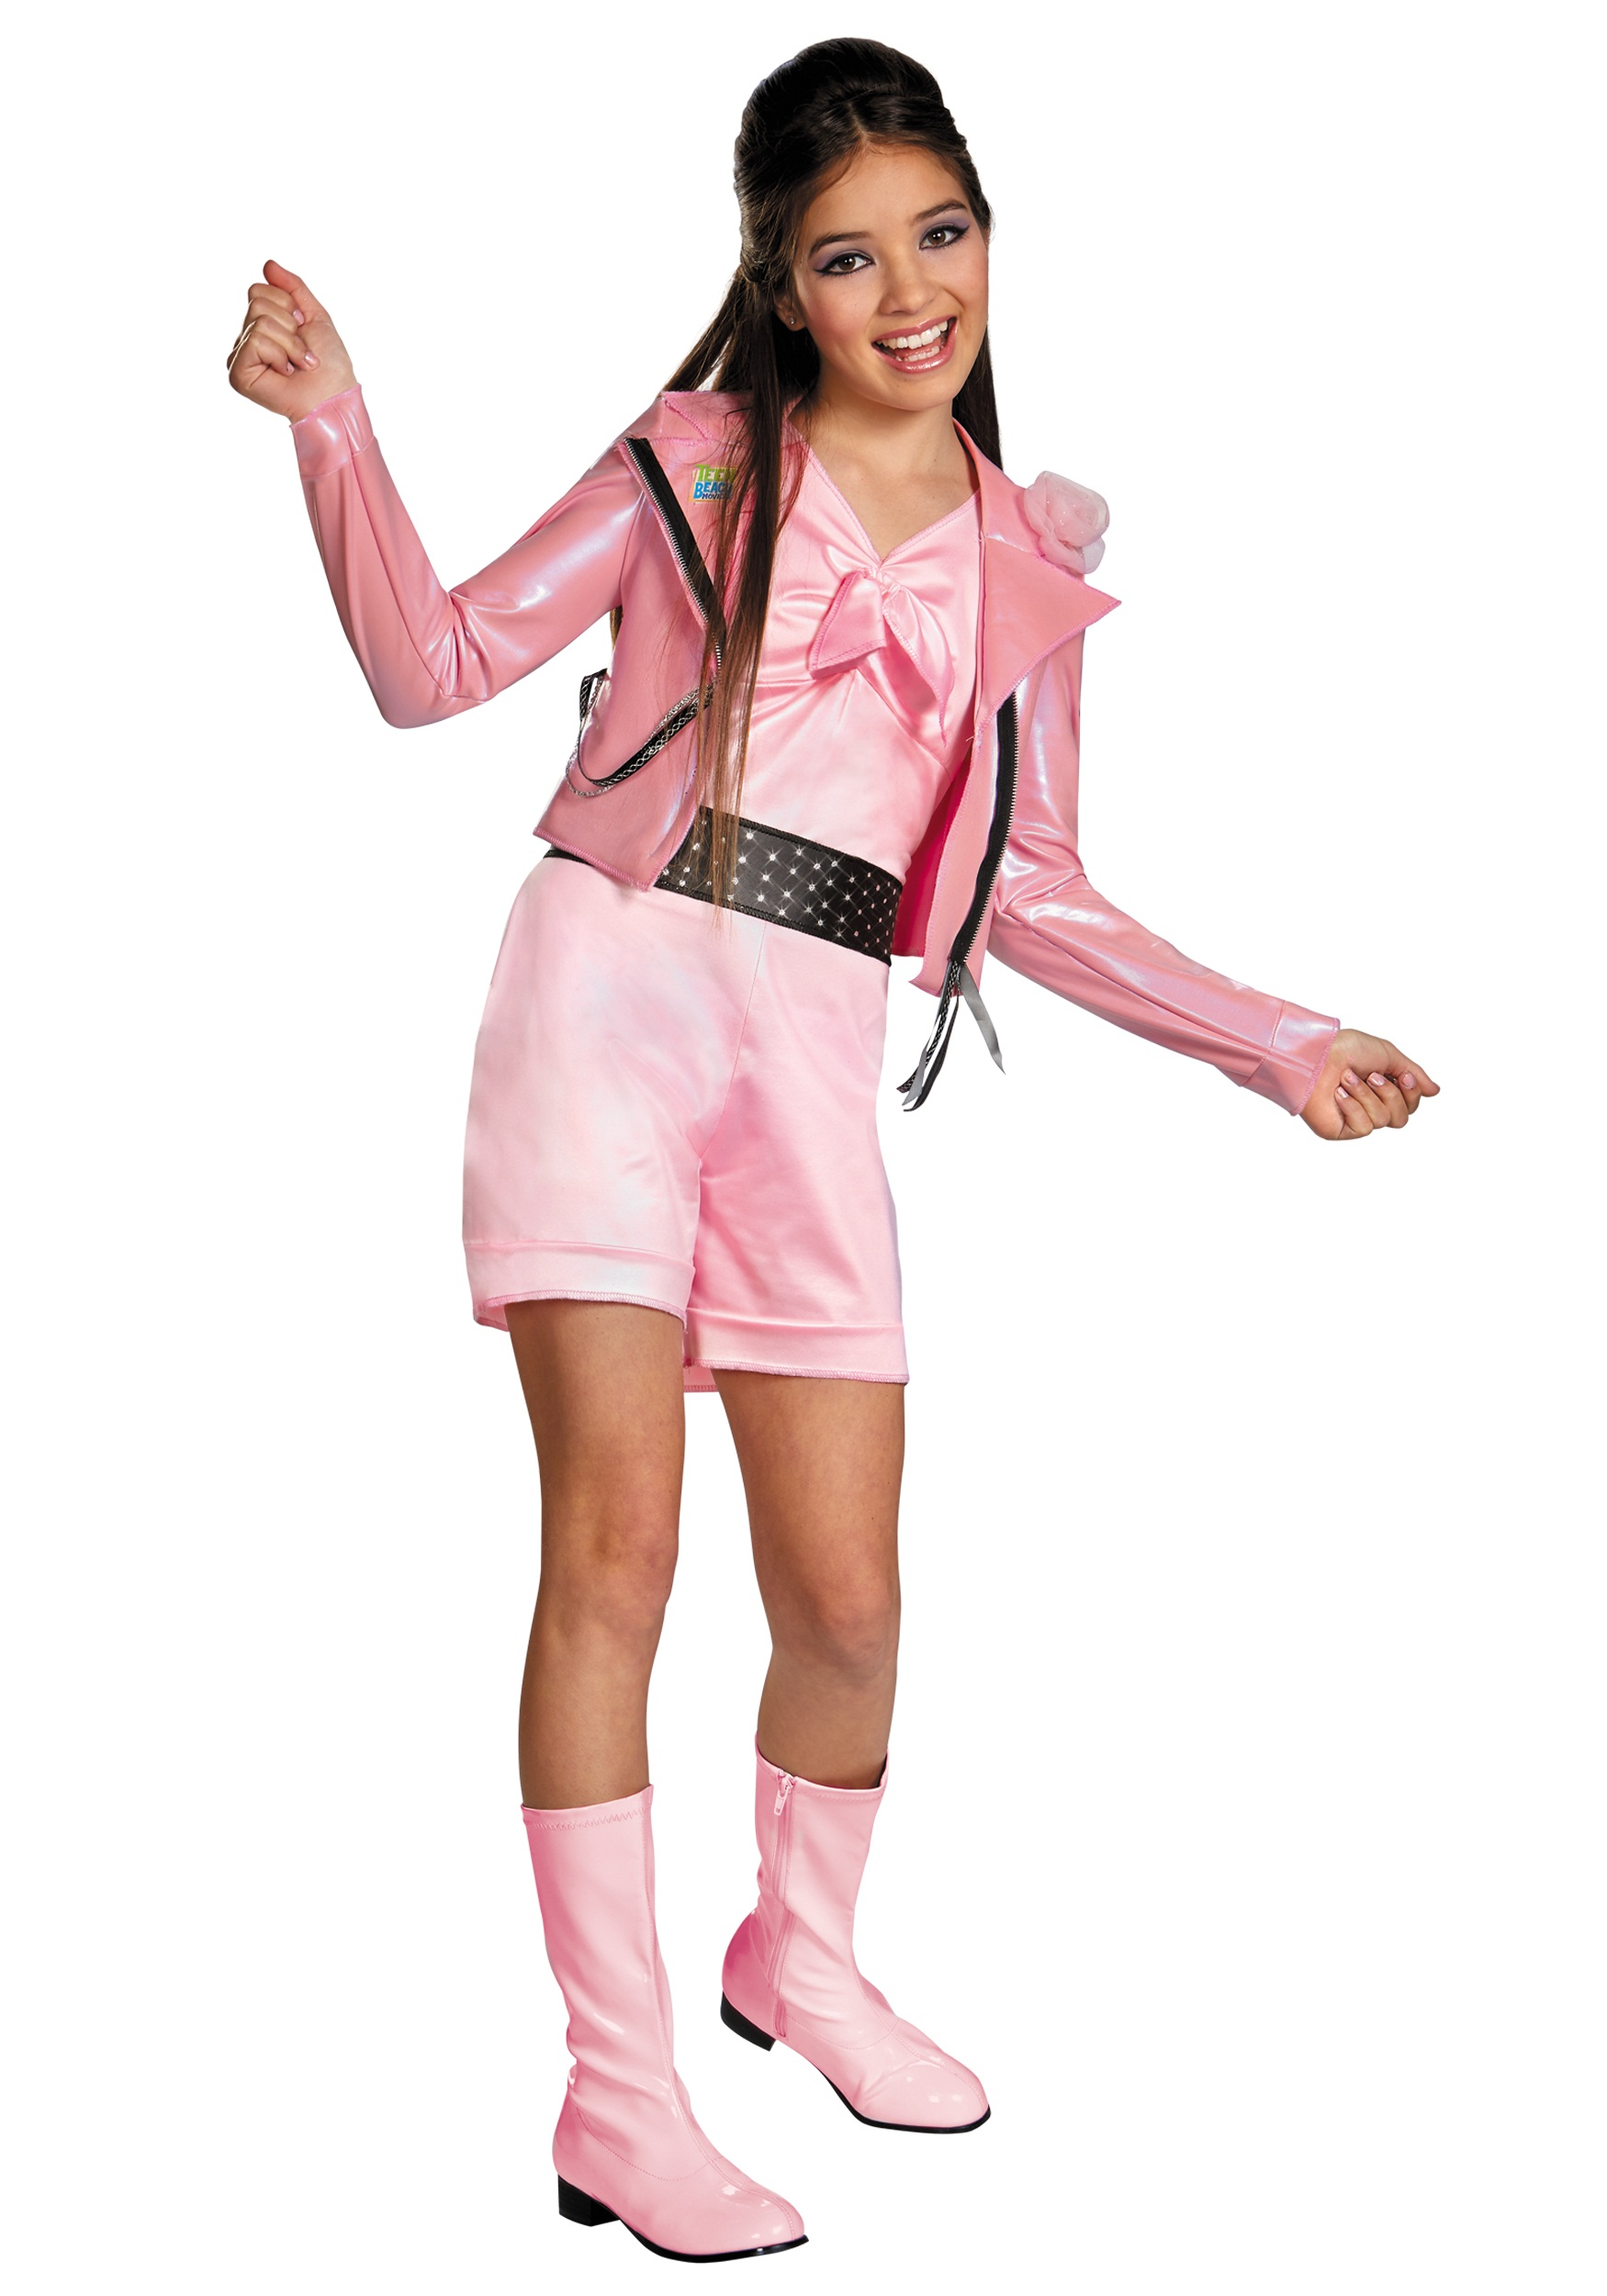 Girls Teen Beach Lela Biker Deluxe Costume